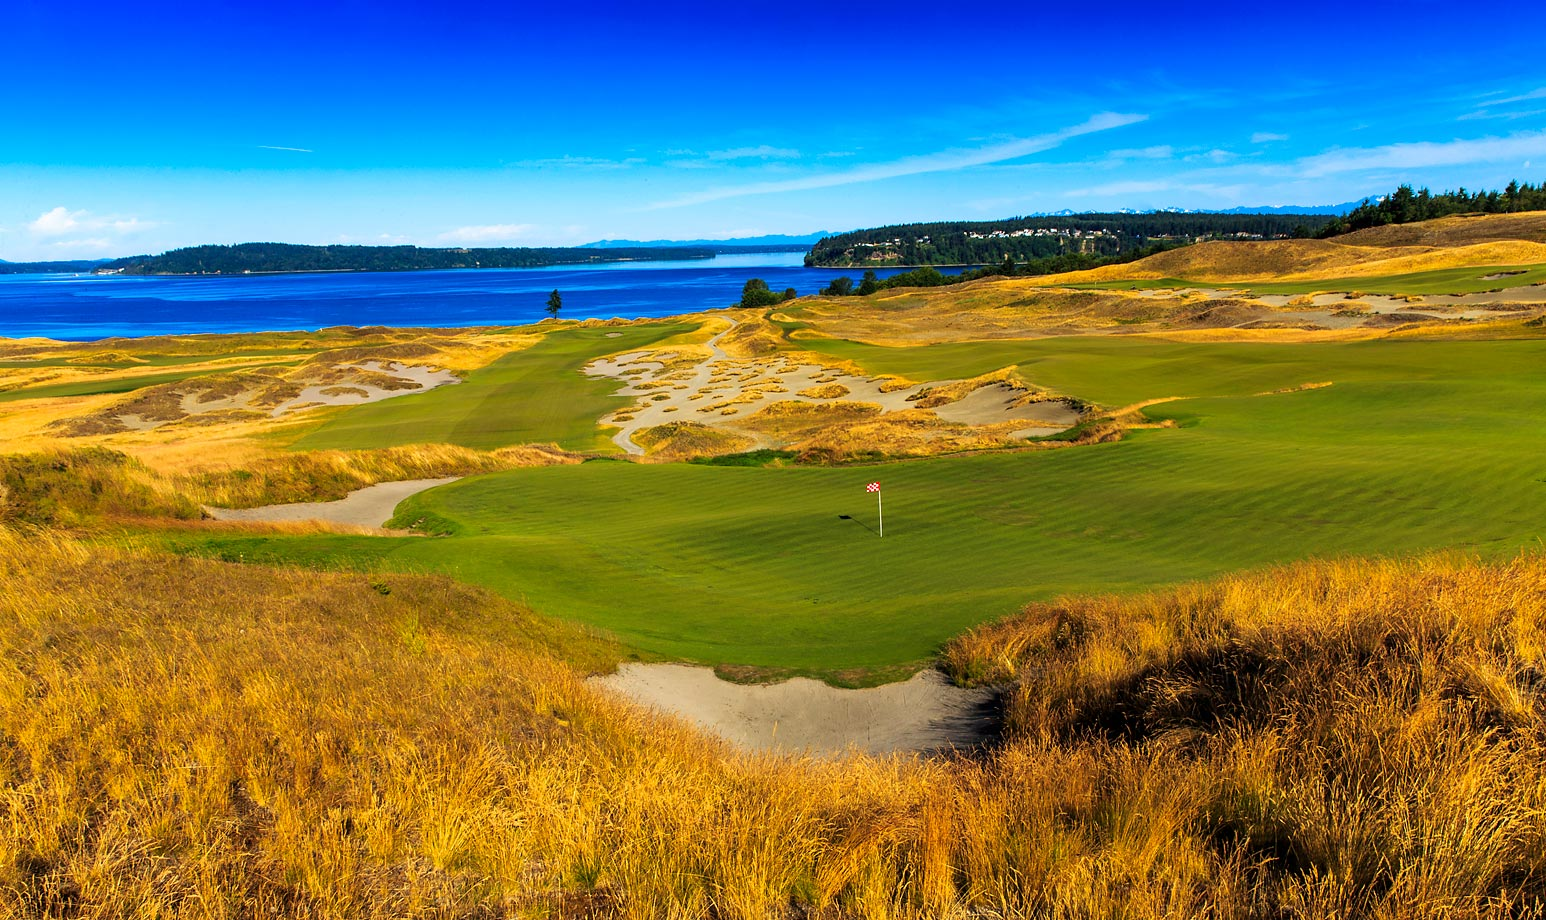 The fourth hole at Chambers Bay, known as 'Hazard's Ascent', was a par 5 during the 2010 U.S. Amateur, but will play as a par 4 during the U.S. Open.